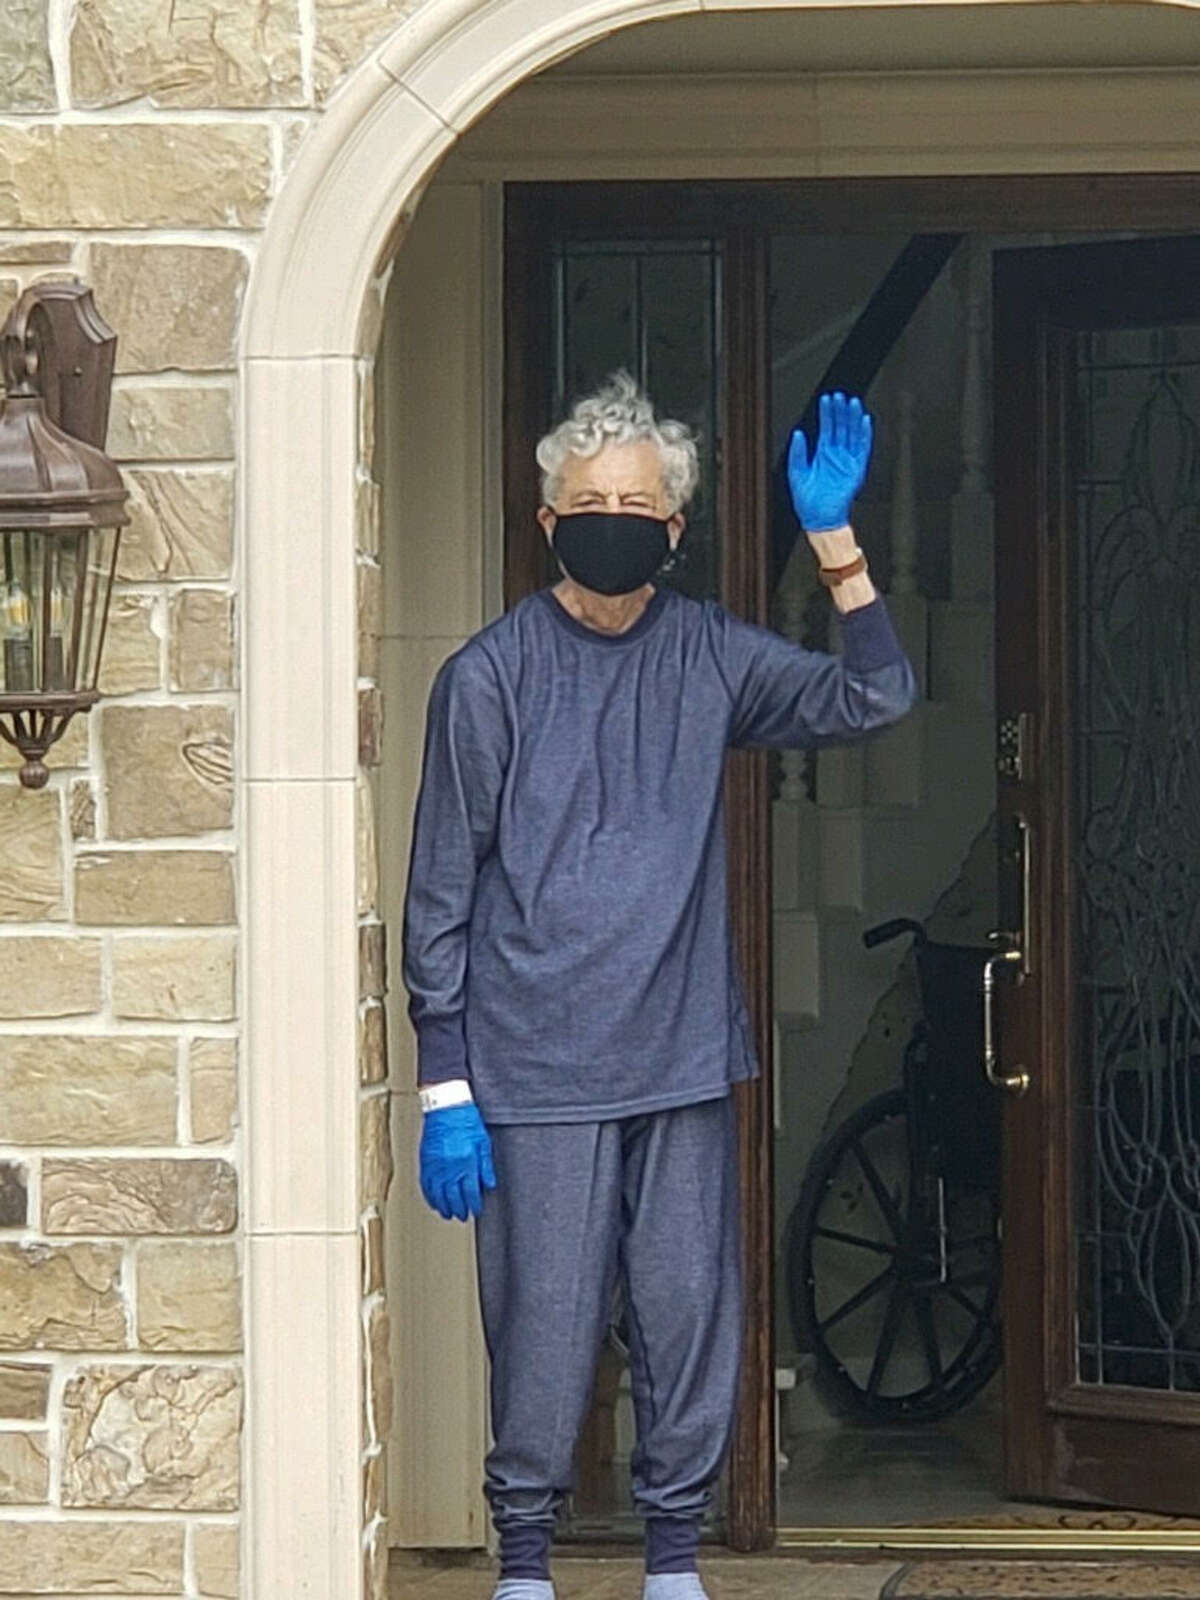 Ralph, on the other hand, said he didn't find out he had the virus until after he came back to moving around.